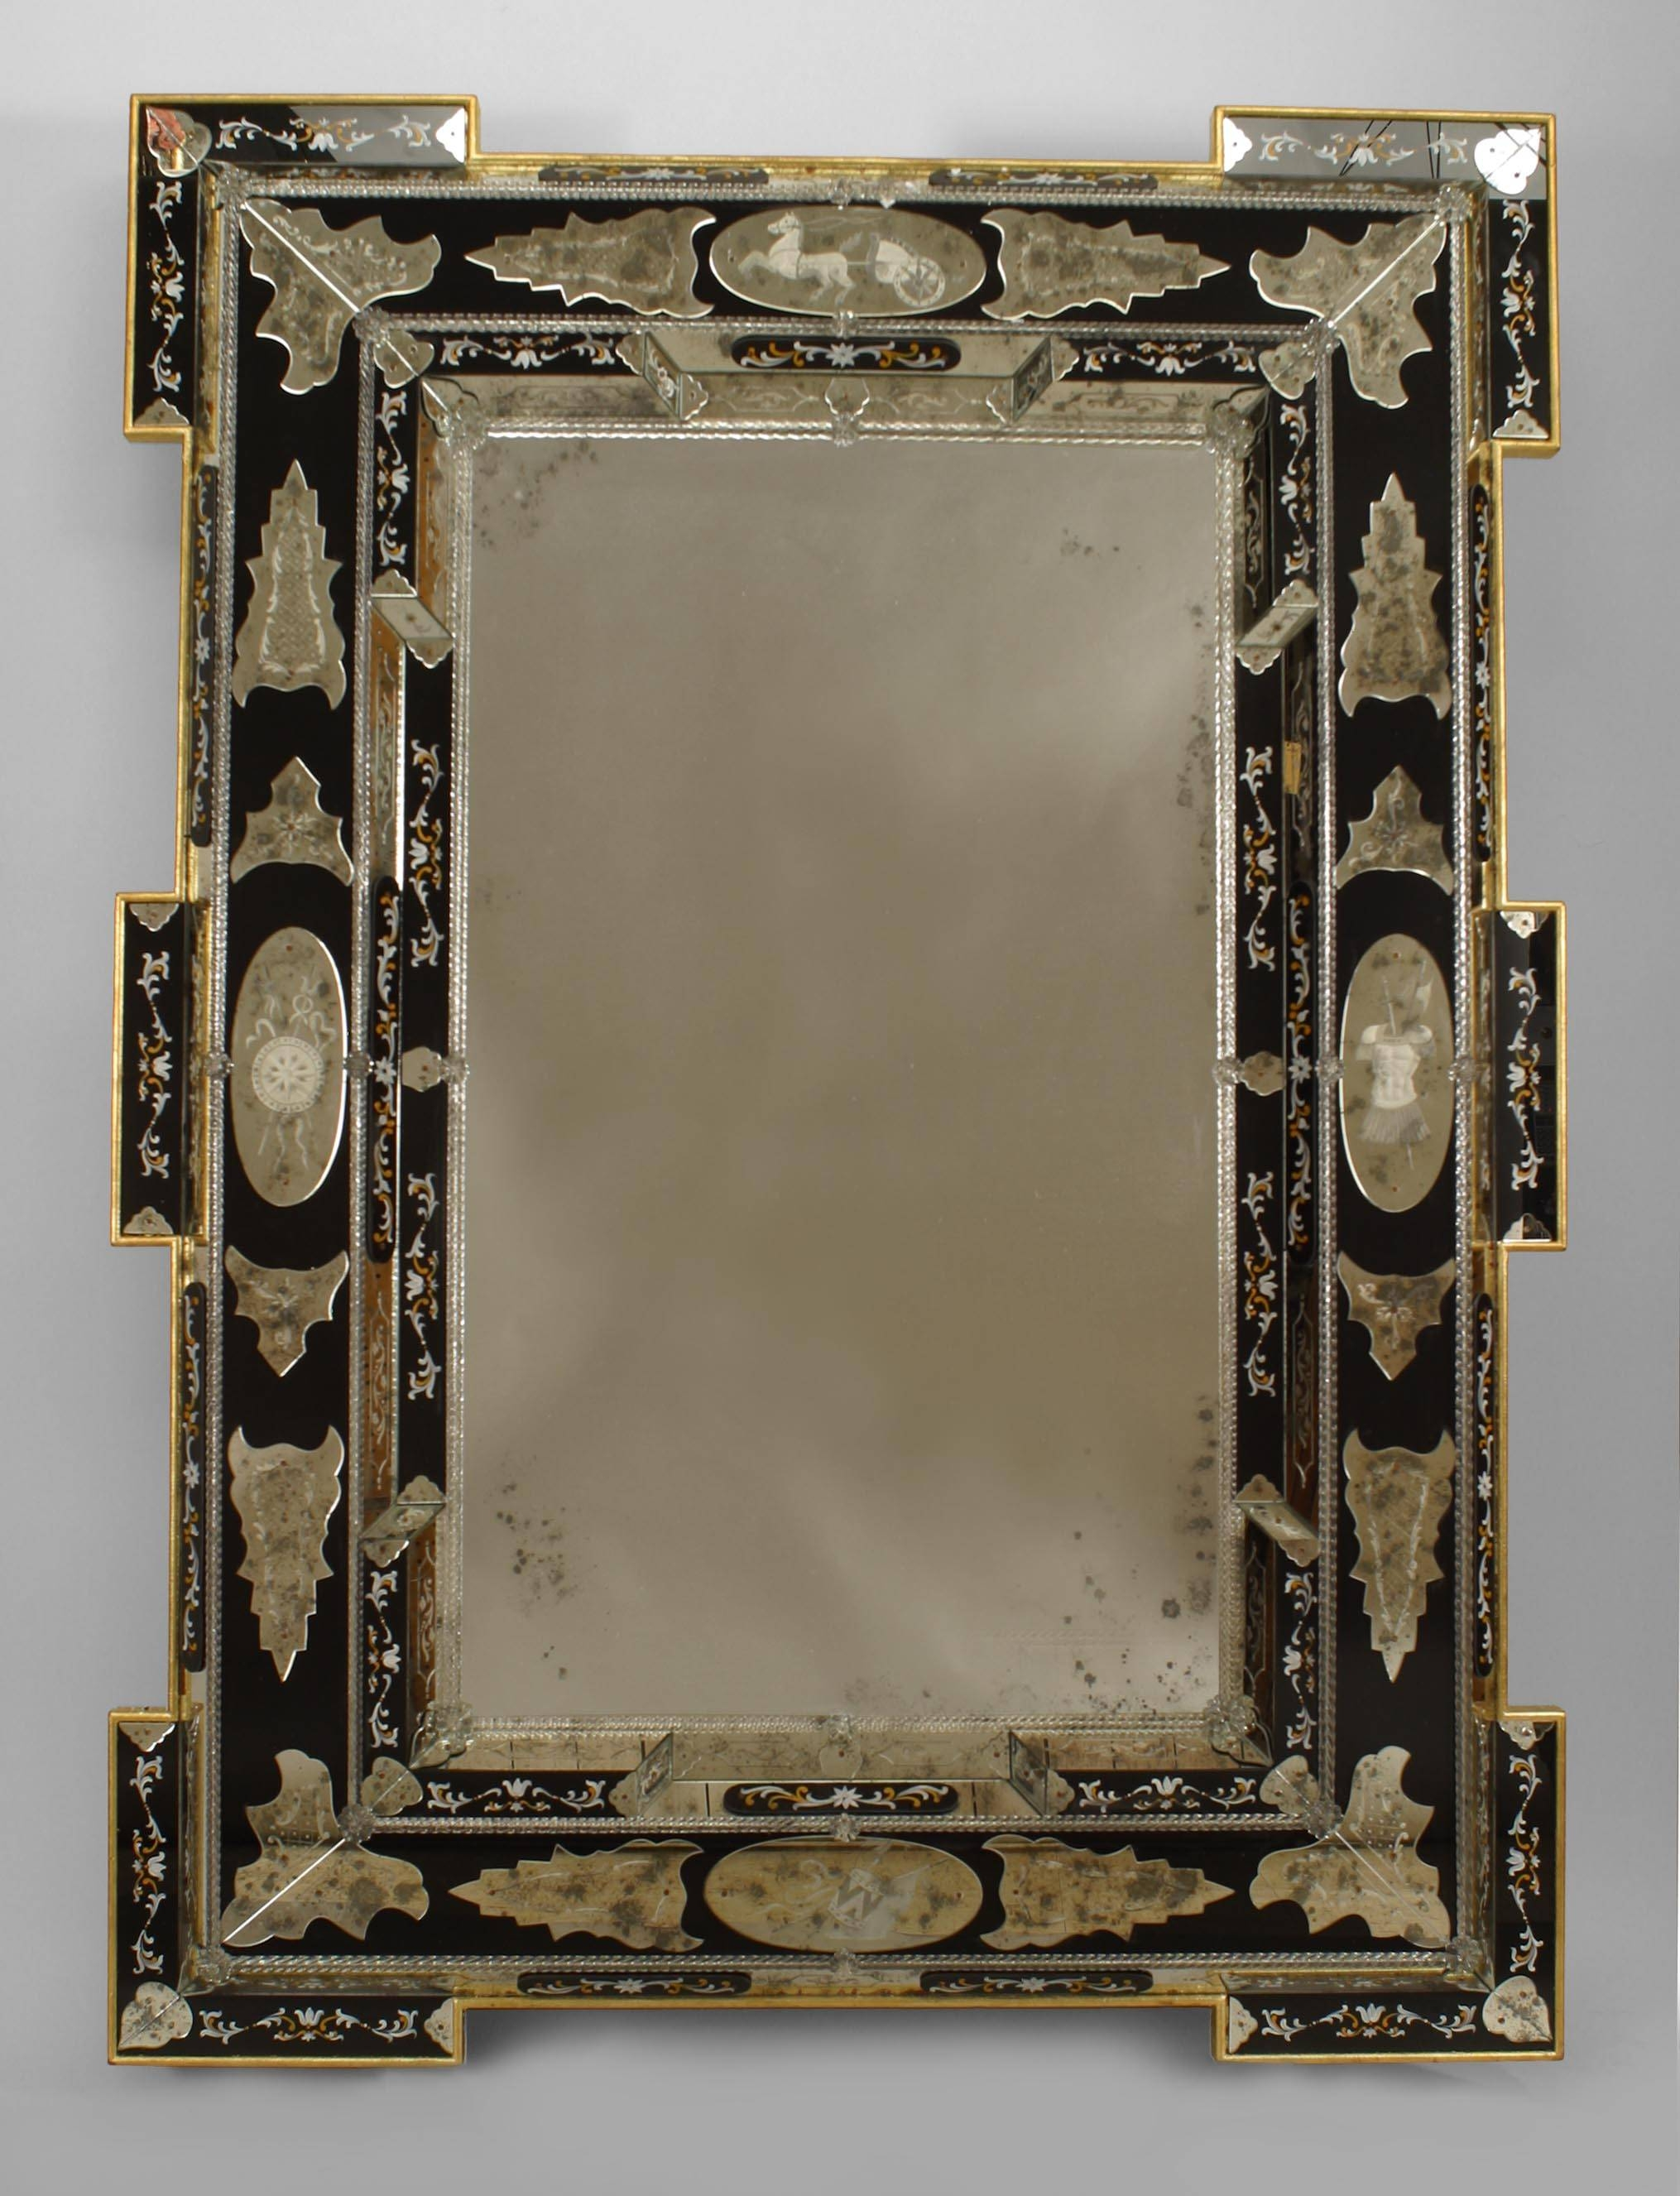 Interior: Antique Venetian Mirrors Oval Venetian Mirror Venetian within Modern Venetian Mirrors (Image 12 of 25)